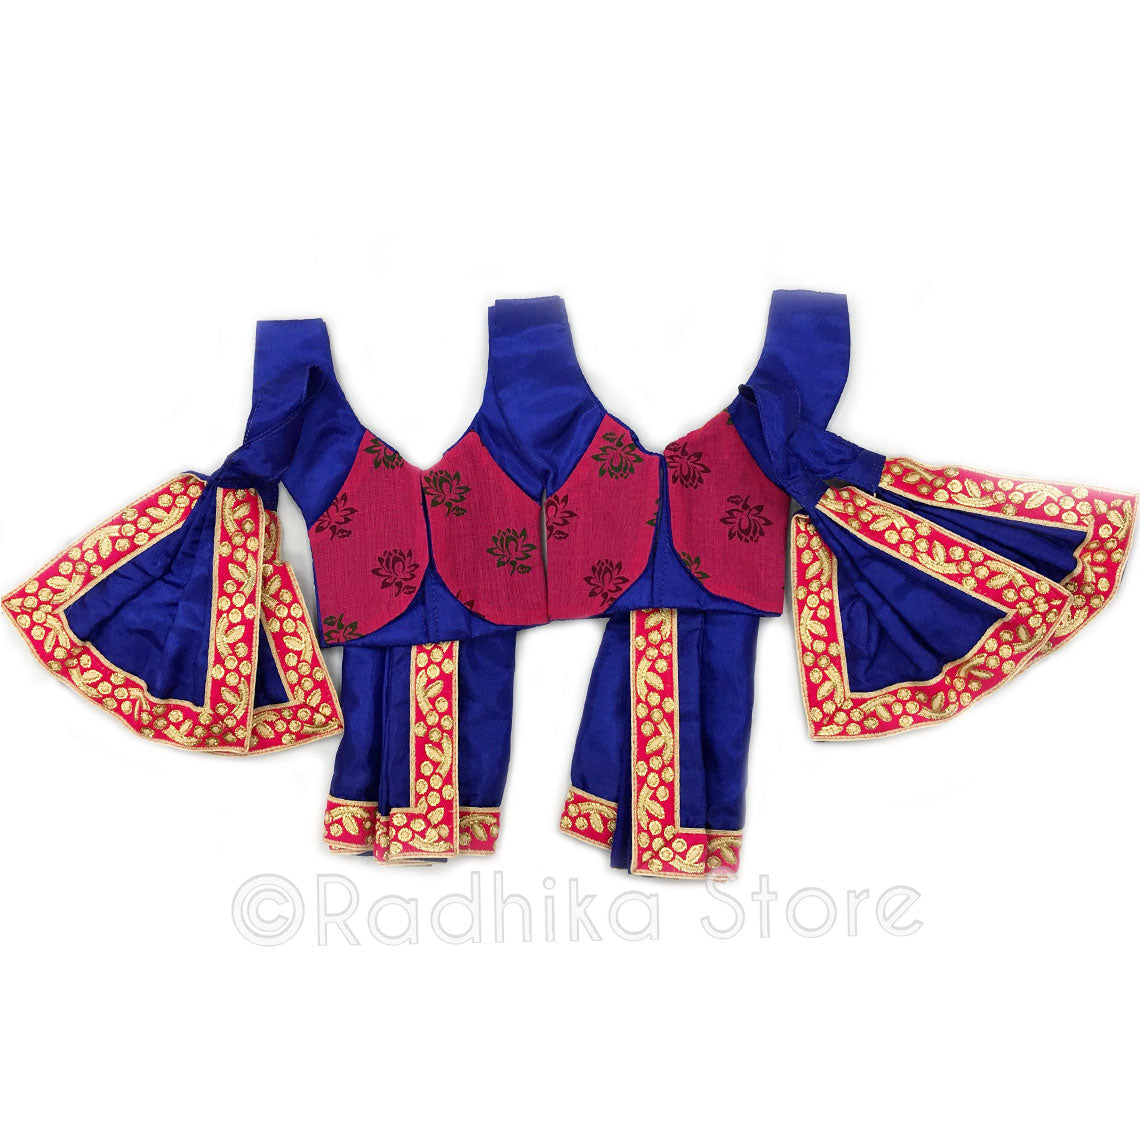 "Peacock Blue With Lotus Vest - Deity Outfit (Gaura Nitai)- Size 5"" Inch Dhoti"